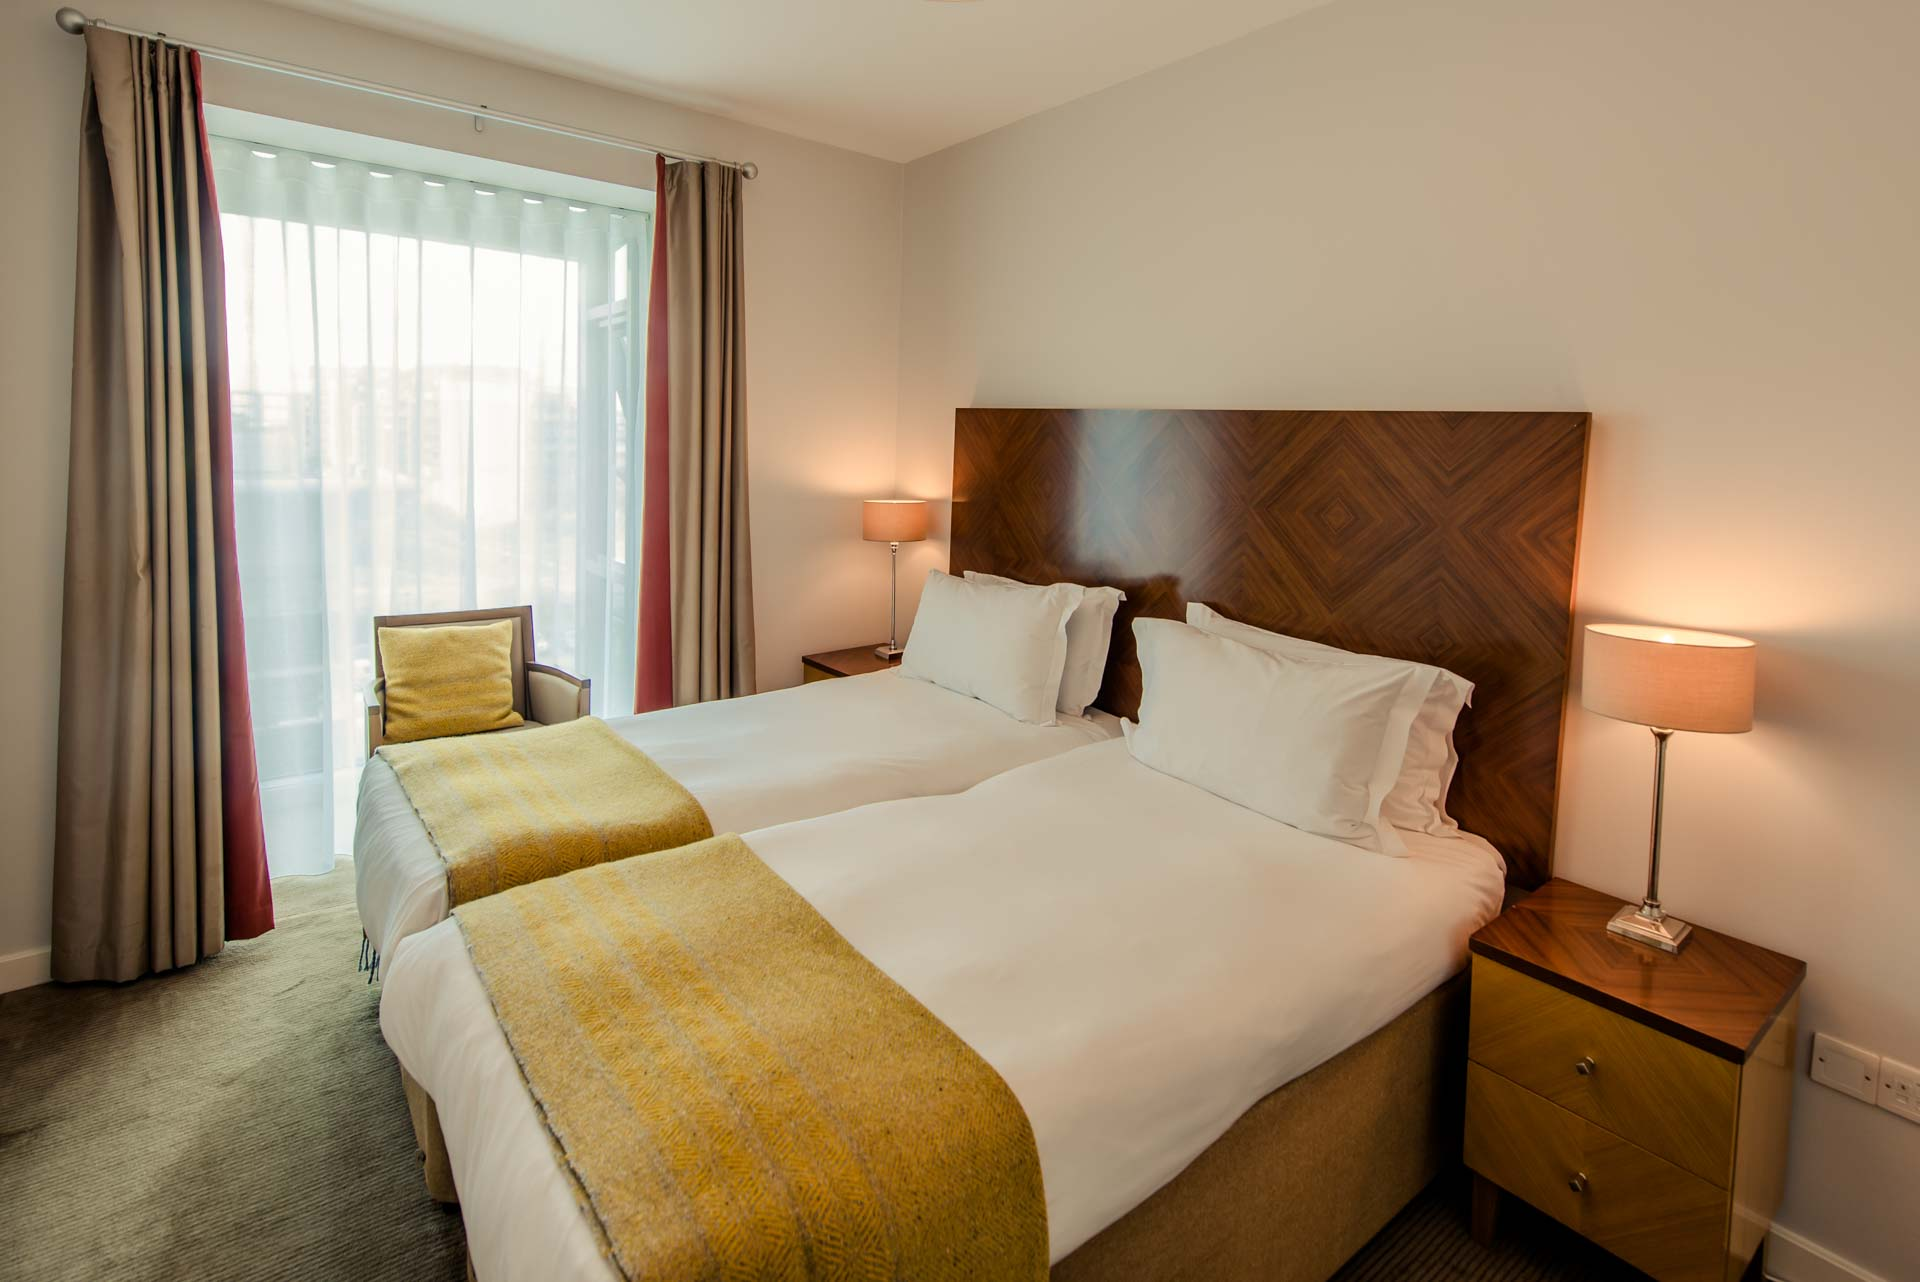 Twin bedroom at Premier Suites Dublin Sandyford, Sandyford, Dublin - Citybase Apartments